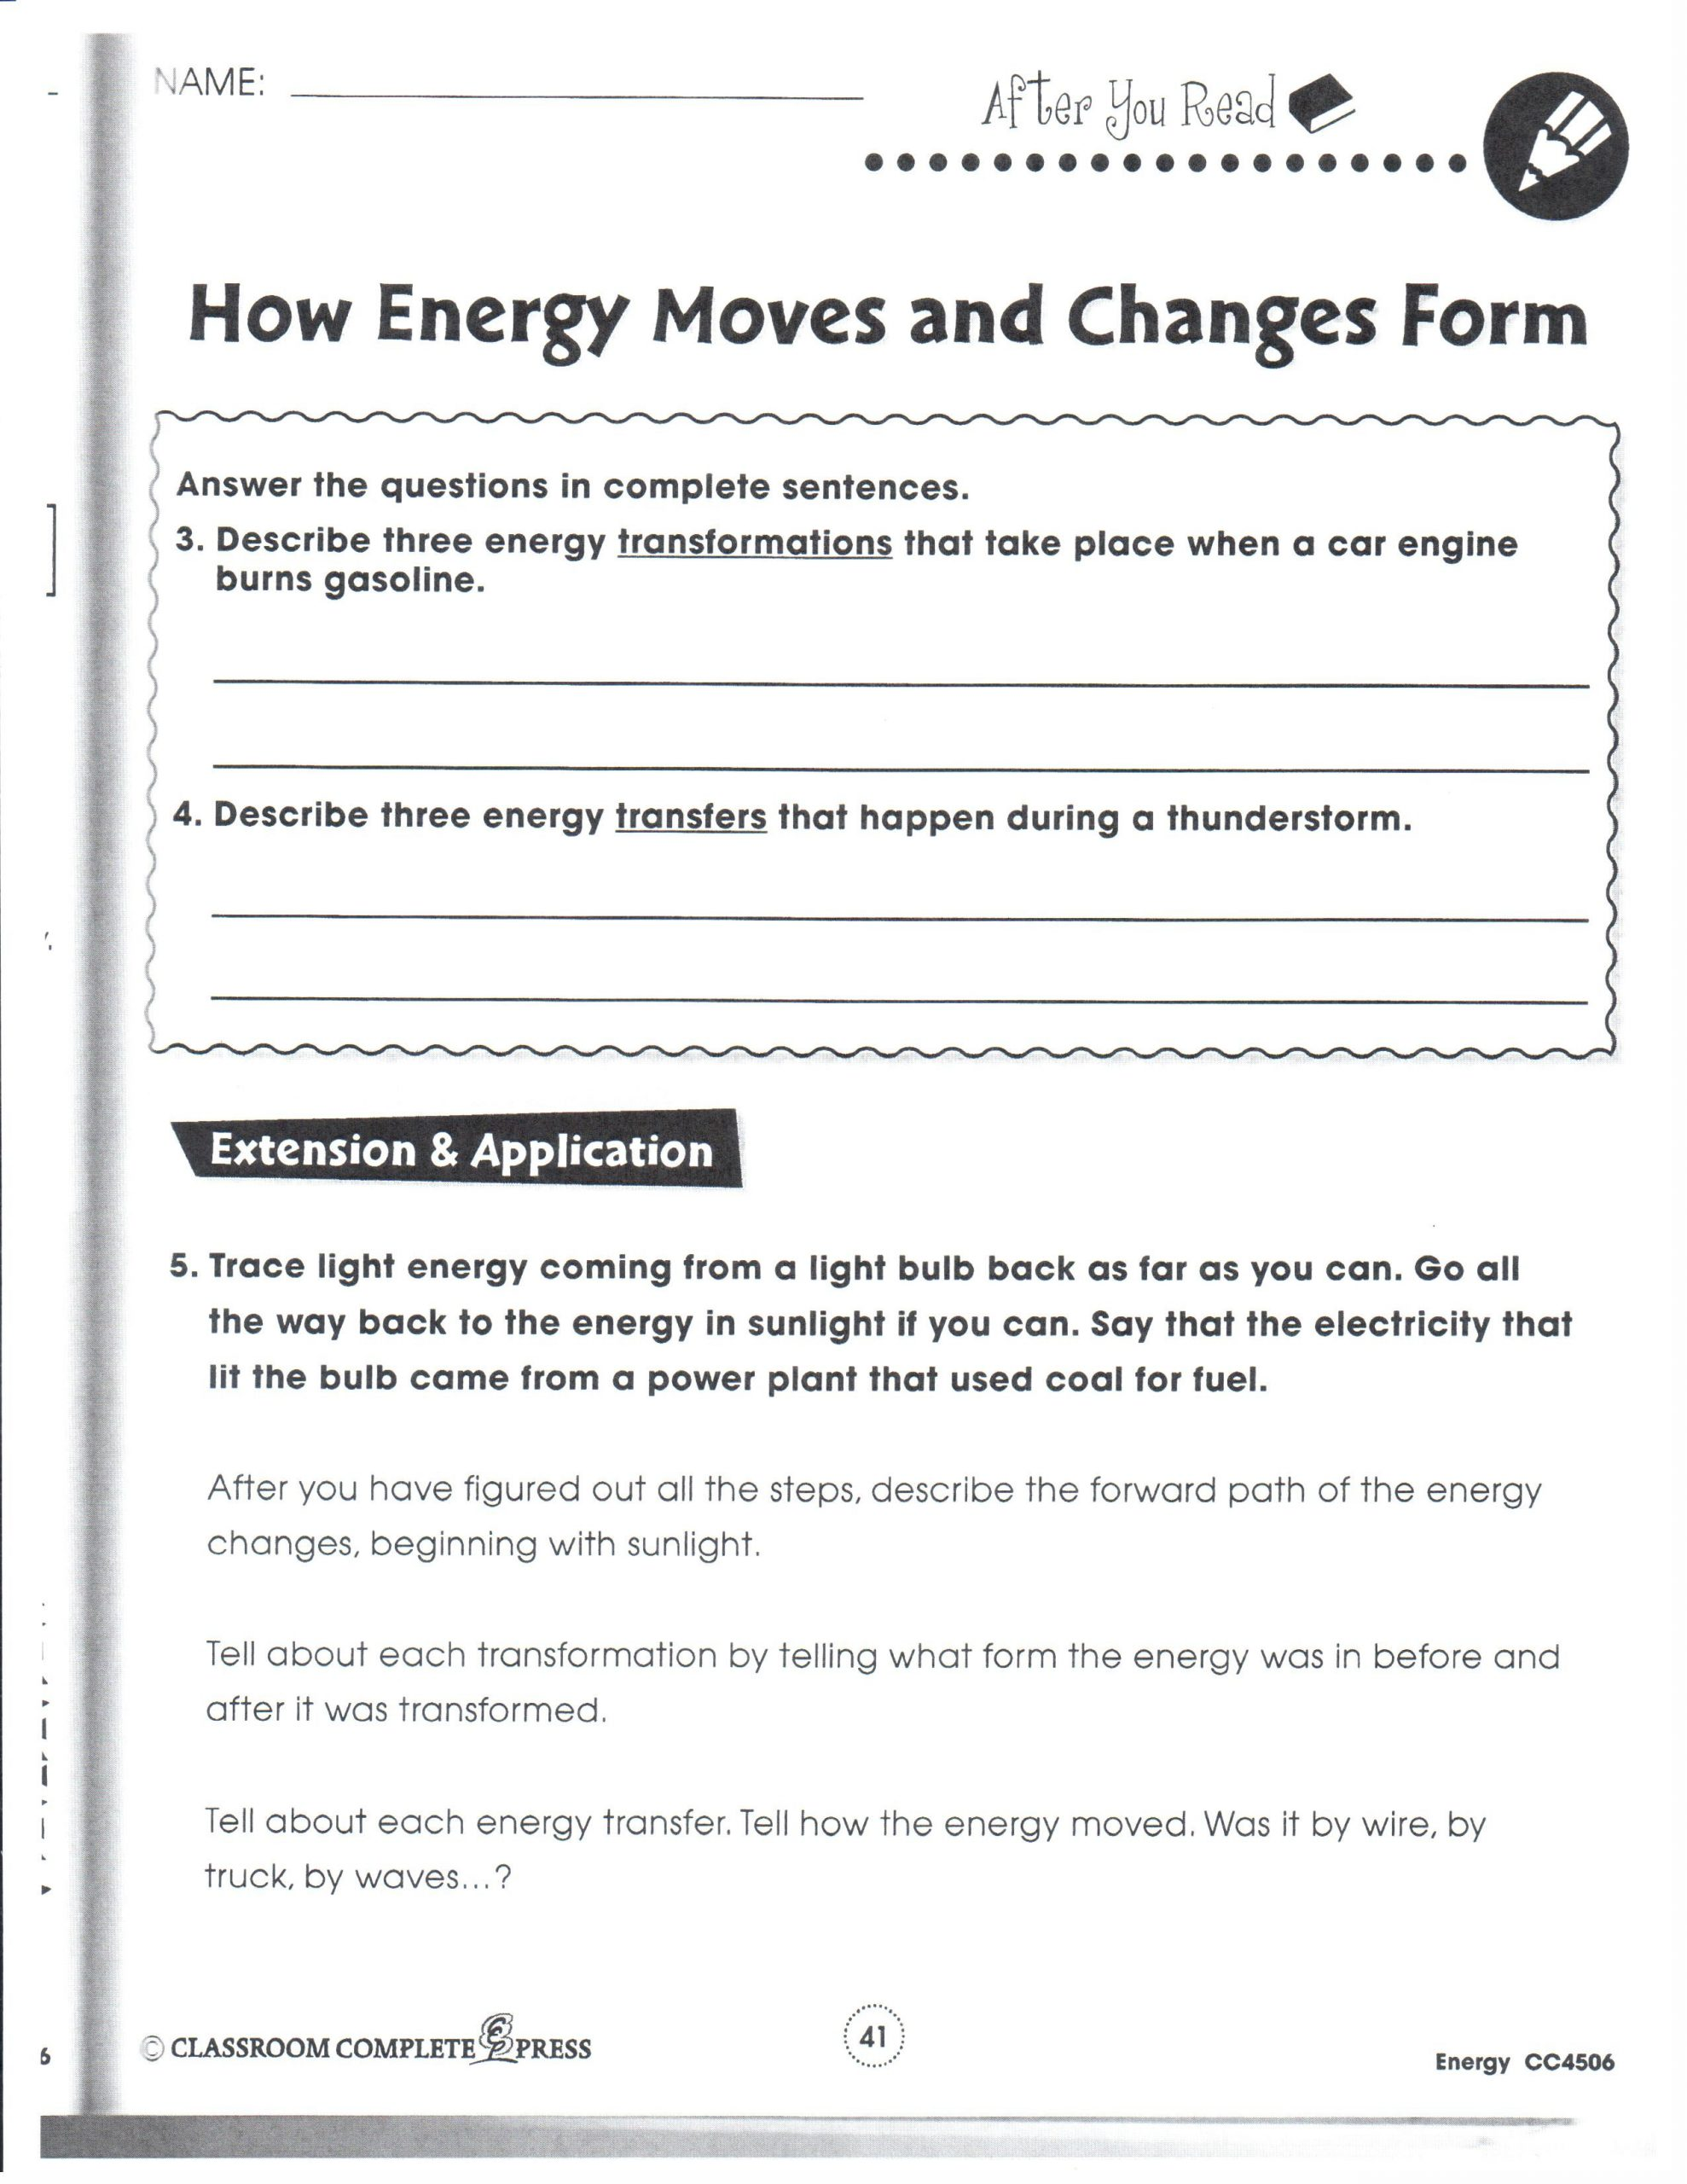 Energy Transformation Worksheets Middle School Helpers Essay Domestic Premier Homewares Writing the